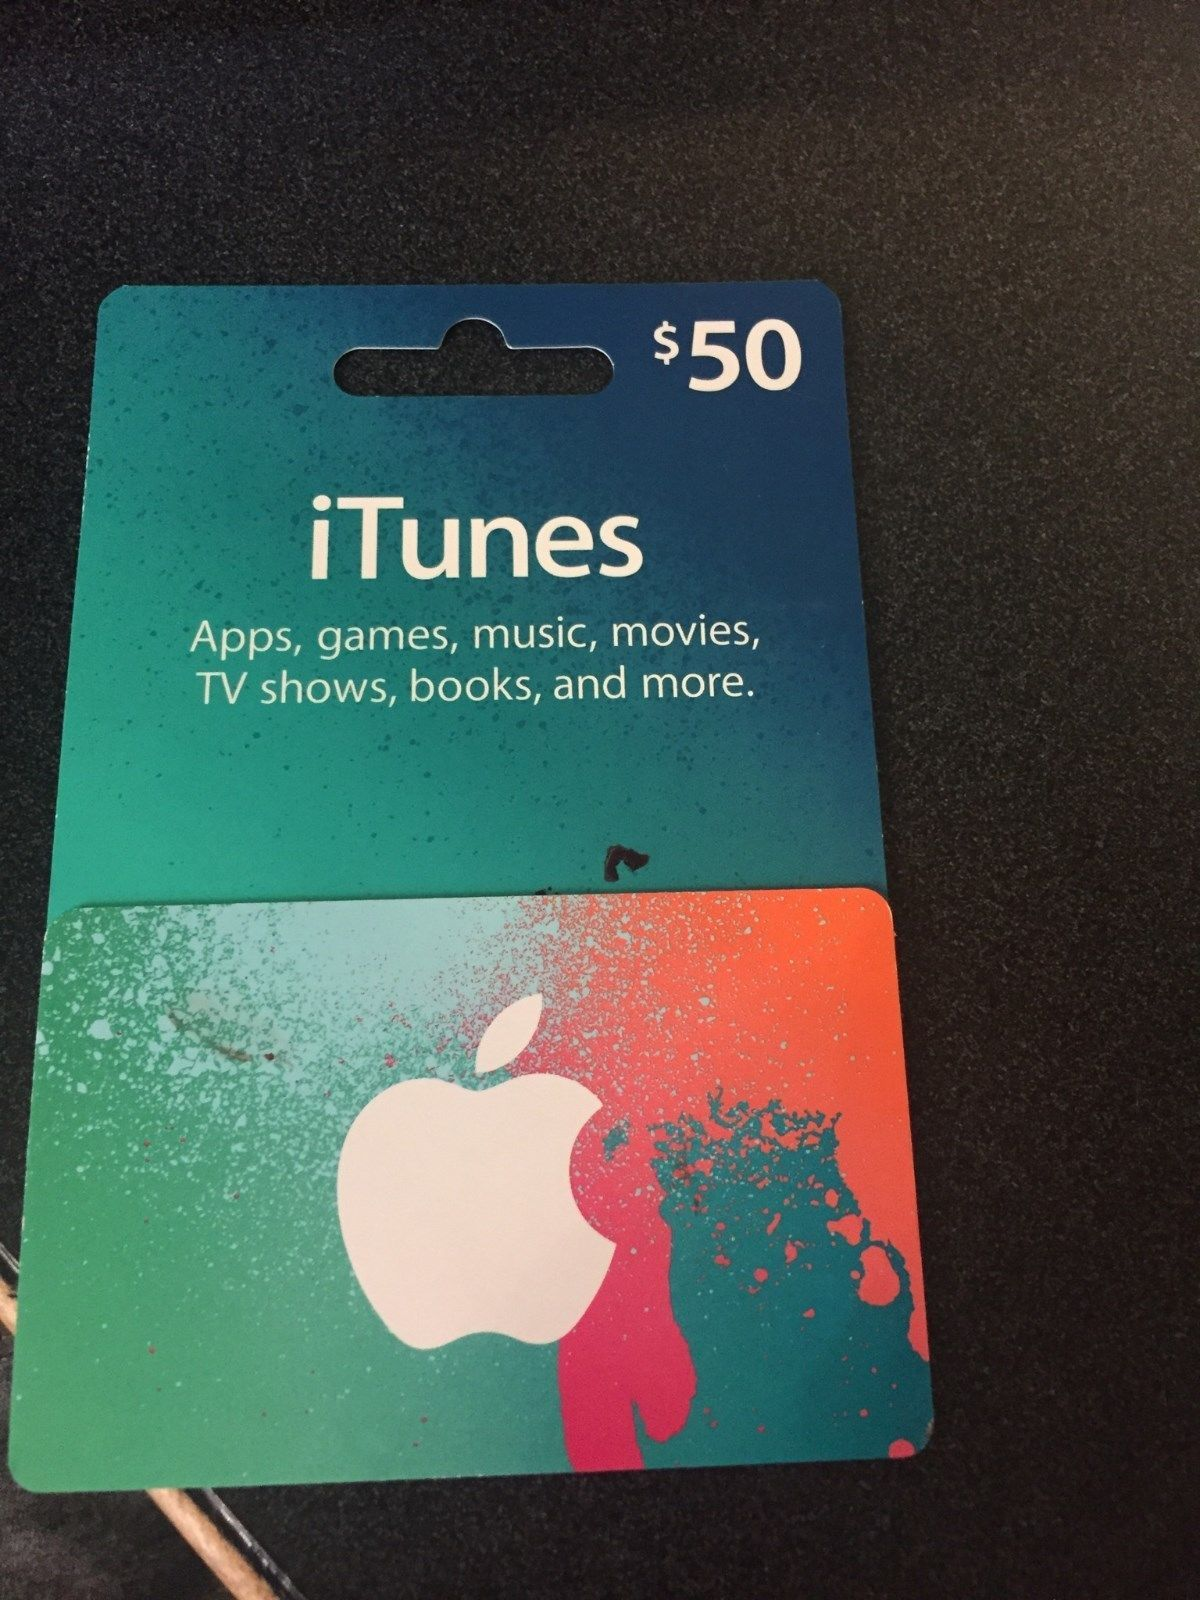 Coupons Giftcards 50 Itunes Gift Card Coupons Giftcards